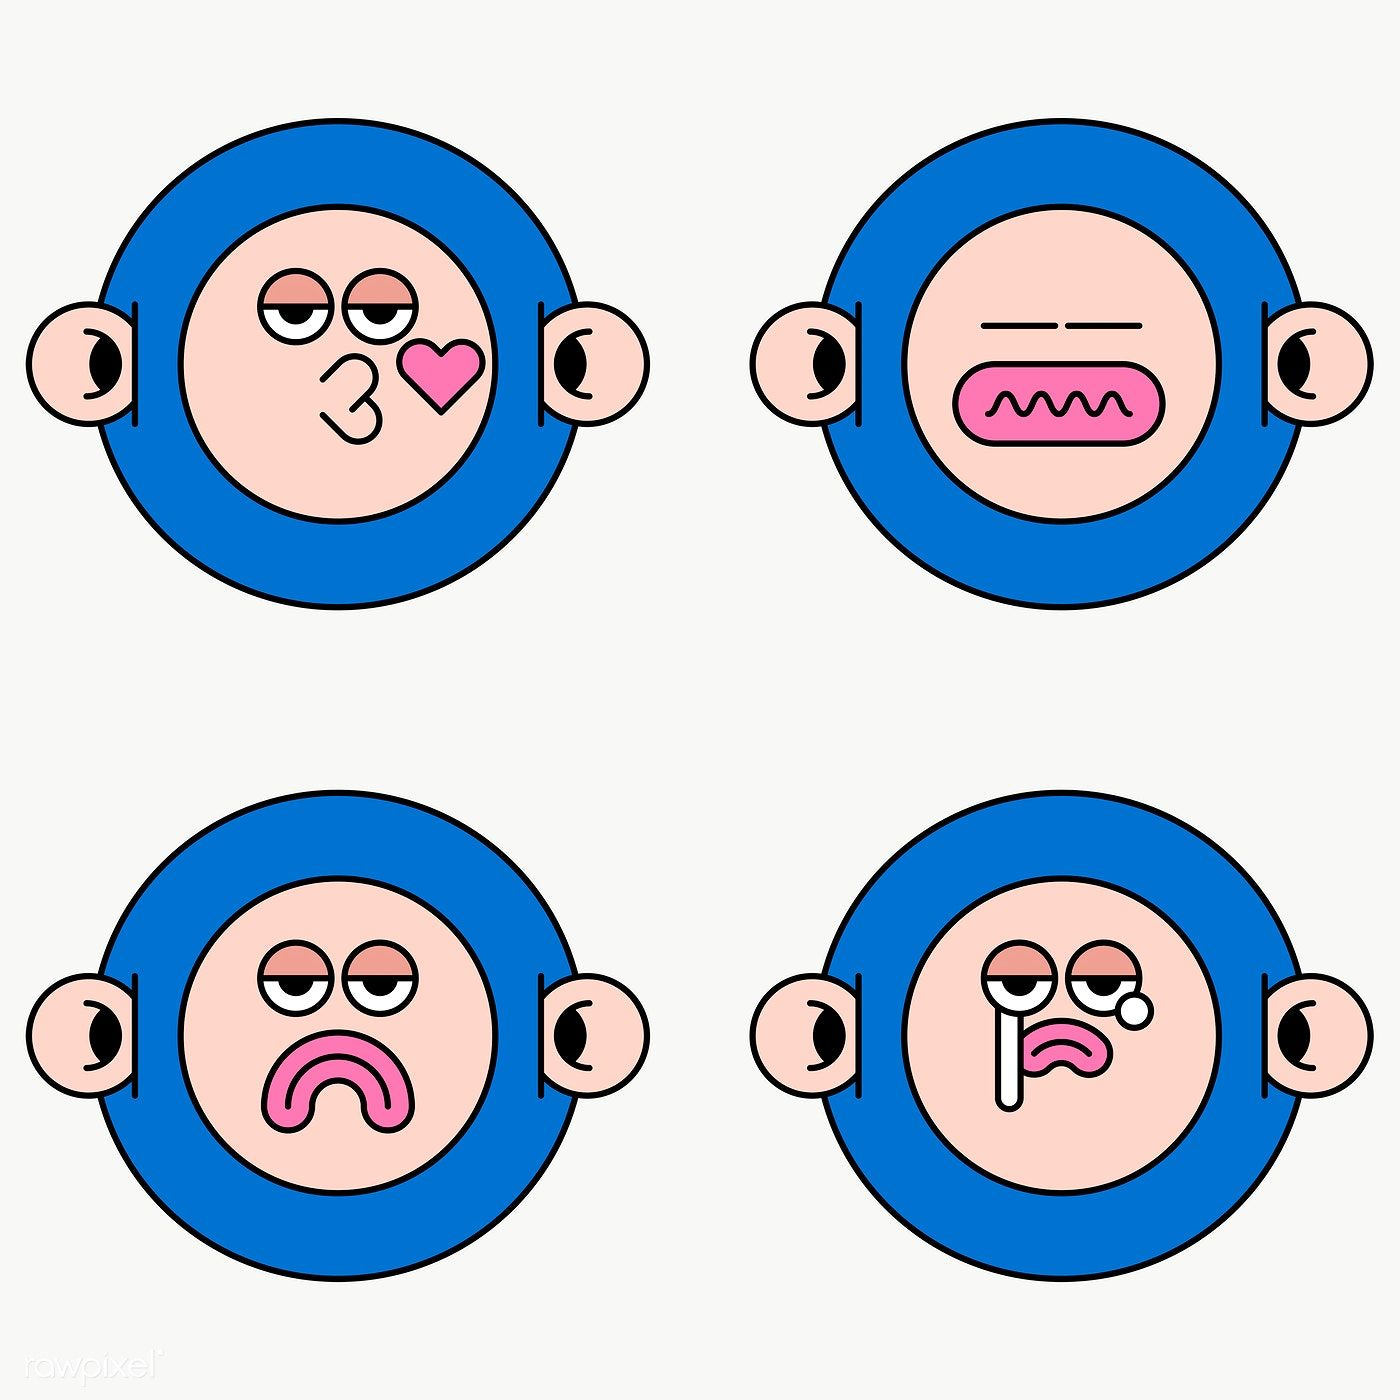 Cool Monkey Monster Sticker Set Transparent Png Free Image By Rawpixel Com Te Monster Stickers Sticker Set Vector Free